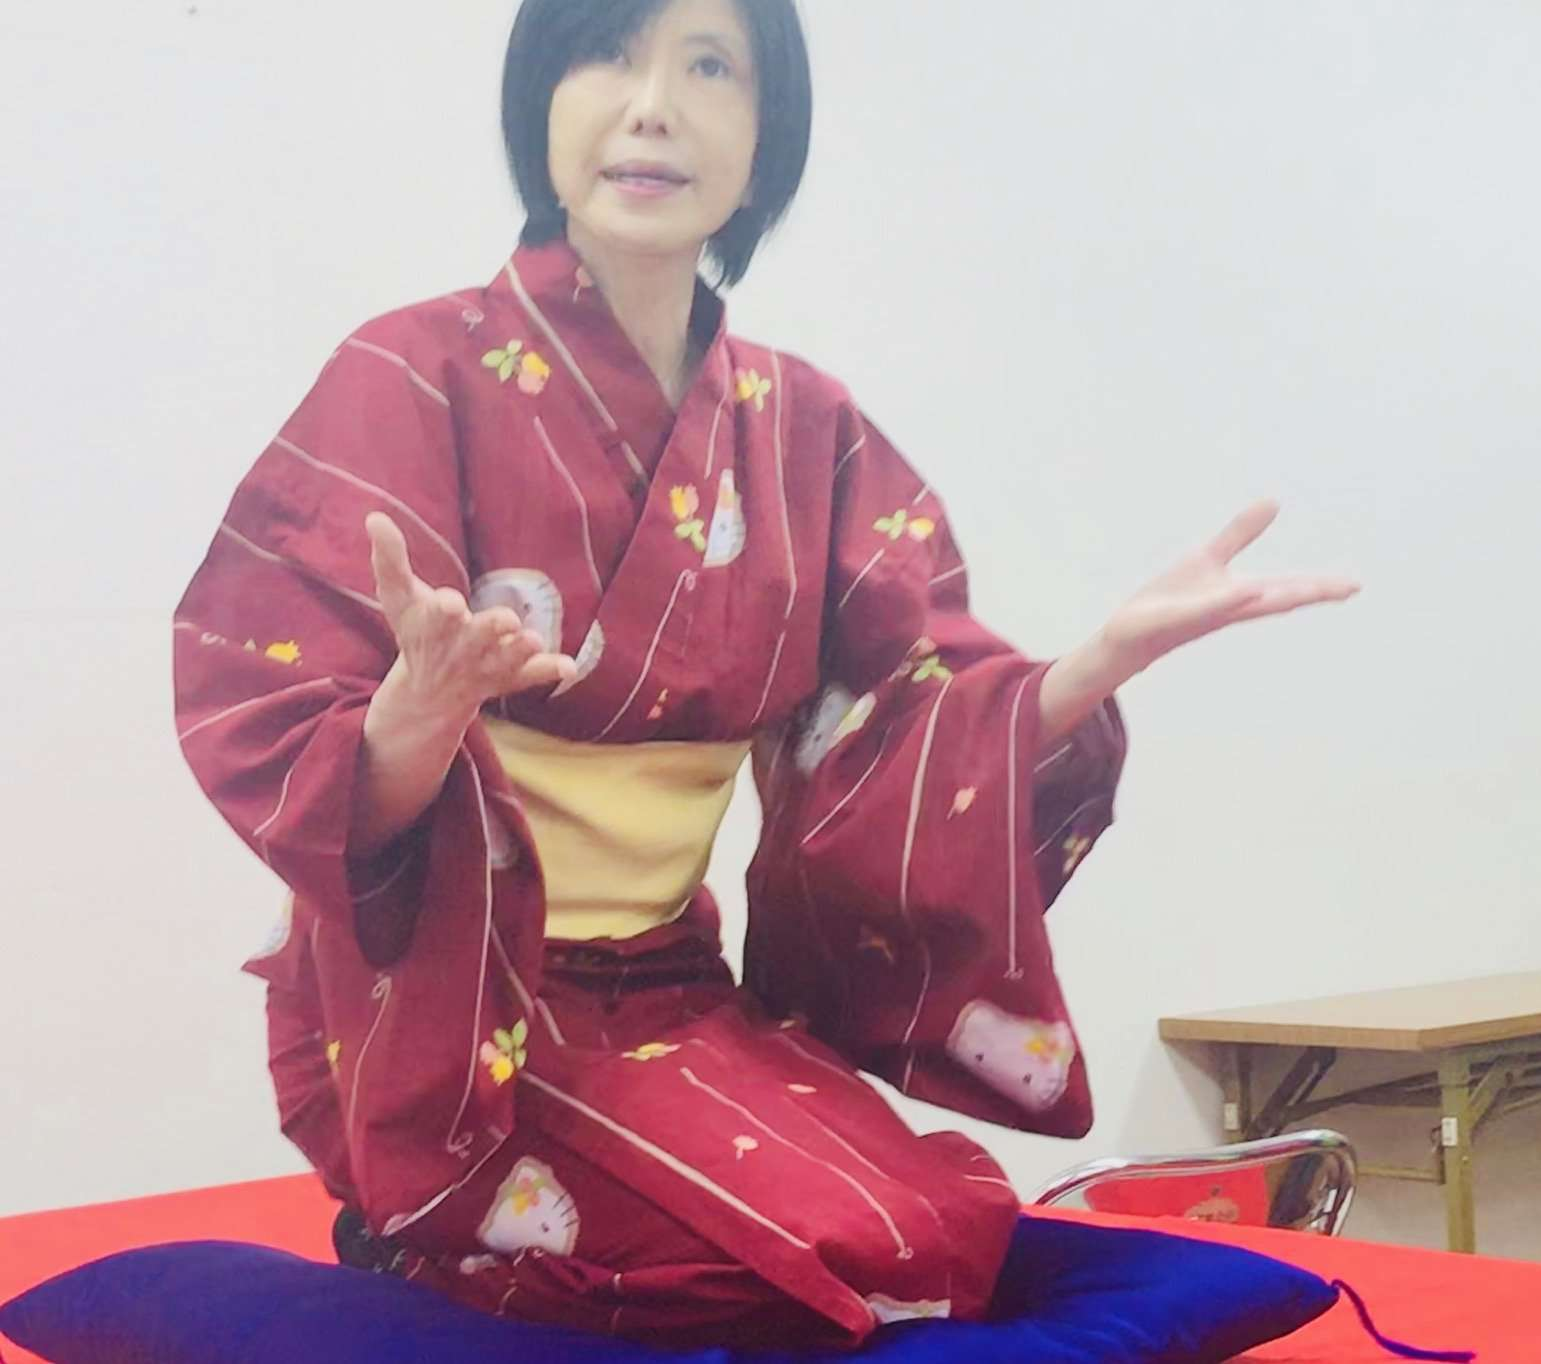 Kitty tells a traditional Rakugo story in English.